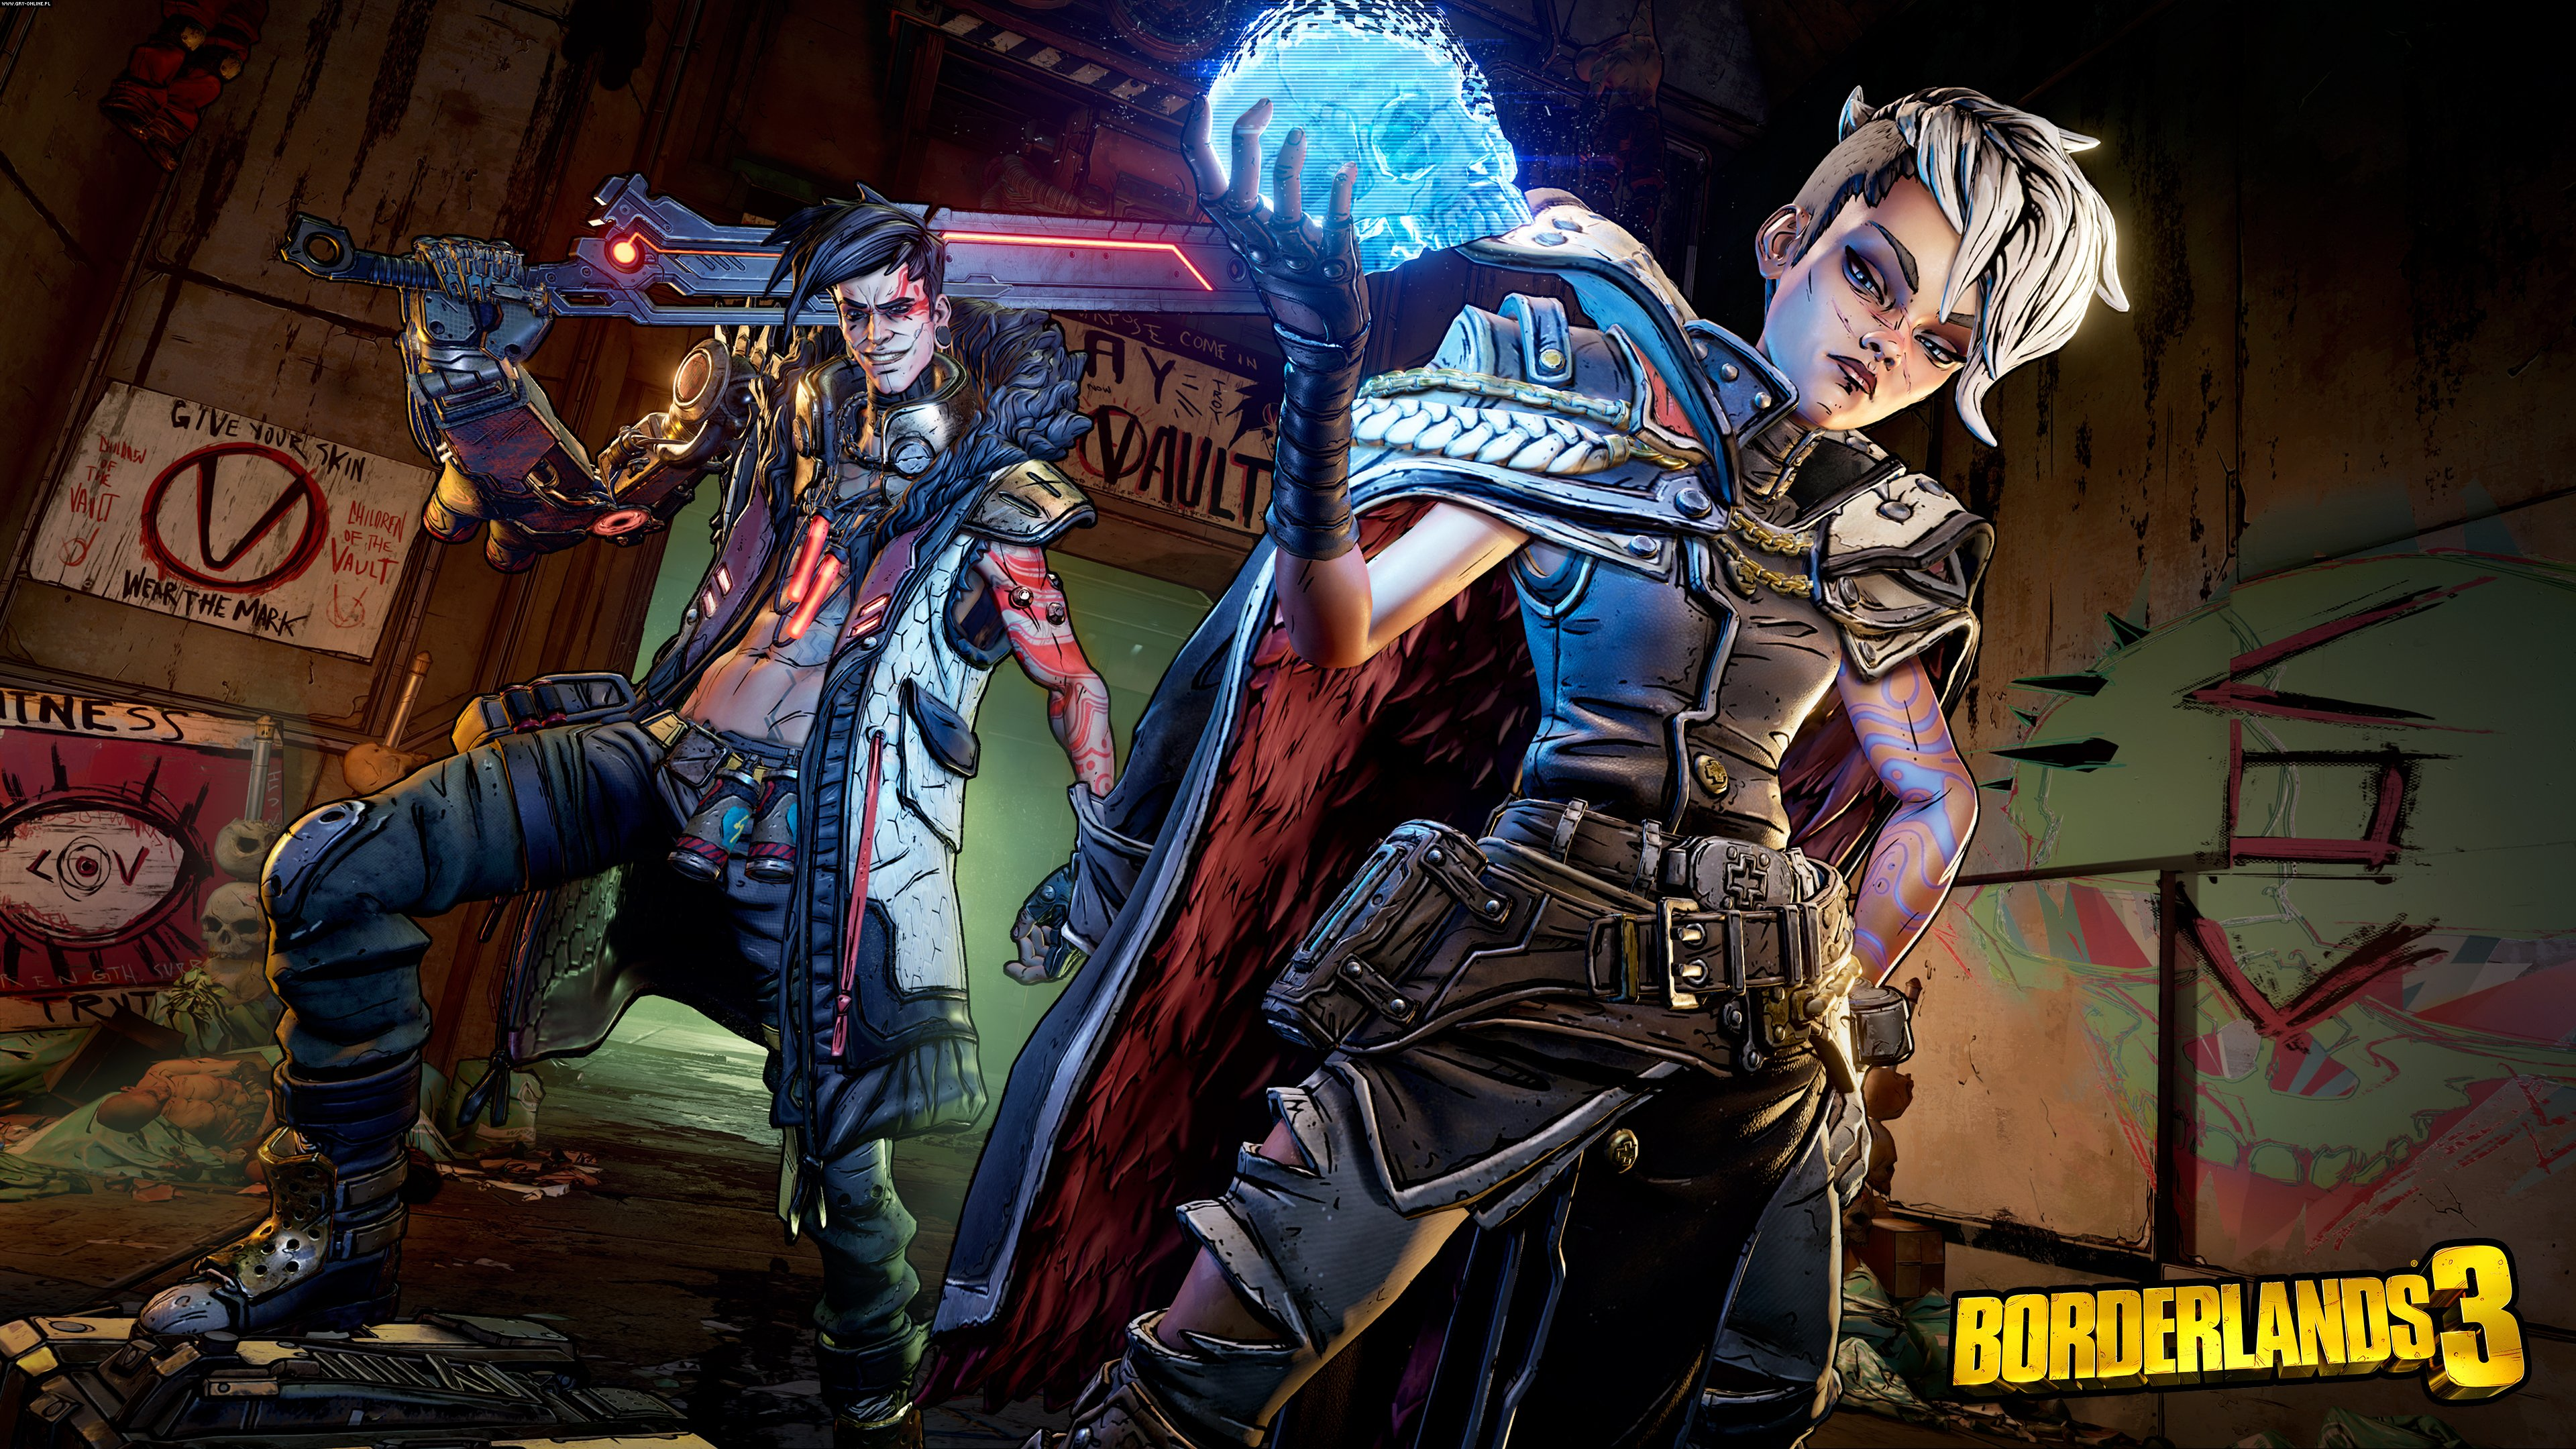 Borderlands 3 PC, PS4, XONE Games Image 21/35, Gearbox Software, 2K Games